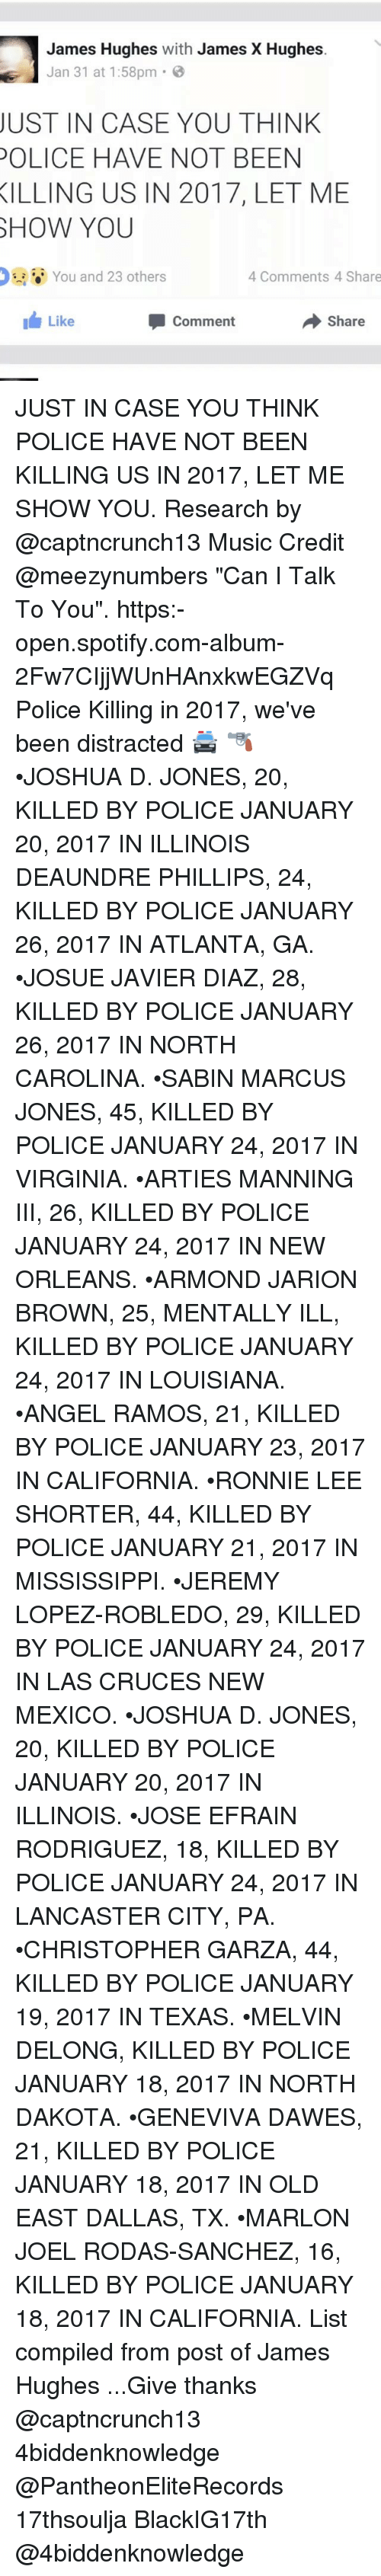 """christophe: James Hughes  with James X Hughes  Jan 31 at 1:58pm  JUST IN CASE YOU THINK  POLICE HAVE NOT BEEN  KILLING US IN 2017, LET ME  SHOW YOU  You and 23 others  4 Comments 4 Share  I Like  share  Comment JUST IN CASE YOU THINK POLICE HAVE NOT BEEN KILLING US IN 2017, LET ME SHOW YOU. Research by @captncrunch13 Music Credit @meezynumbers """"Can I Talk To You"""". https:-open.spotify.com-album-2Fw7CIjjWUnHAnxkwEGZVq Police Killing in 2017, we've been distracted 🚔 🔫 •JOSHUA D. JONES, 20, KILLED BY POLICE JANUARY 20, 2017 IN ILLINOIS DEAUNDRE PHILLIPS, 24, KILLED BY POLICE JANUARY 26, 2017 IN ATLANTA, GA. •JOSUE JAVIER DIAZ, 28, KILLED BY POLICE JANUARY 26, 2017 IN NORTH CAROLINA. •SABIN MARCUS JONES, 45, KILLED BY POLICE JANUARY 24, 2017 IN VIRGINIA. •ARTIES MANNING III, 26, KILLED BY POLICE JANUARY 24, 2017 IN NEW ORLEANS. •ARMOND JARION BROWN, 25, MENTALLY ILL, KILLED BY POLICE JANUARY 24, 2017 IN LOUISIANA. •ANGEL RAMOS, 21, KILLED BY POLICE JANUARY 23, 2017 IN CALIFORNIA. •RONNIE LEE SHORTER, 44, KILLED BY POLICE JANUARY 21, 2017 IN MISSISSIPPI. •JEREMY LOPEZ-ROBLEDO, 29, KILLED BY POLICE JANUARY 24, 2017 IN LAS CRUCES NEW MEXICO. •JOSHUA D. JONES, 20, KILLED BY POLICE JANUARY 20, 2017 IN ILLINOIS. •JOSE EFRAIN RODRIGUEZ, 18, KILLED BY POLICE JANUARY 24, 2017 IN LANCASTER CITY, PA. •CHRISTOPHER GARZA, 44, KILLED BY POLICE JANUARY 19, 2017 IN TEXAS. •MELVIN DELONG, KILLED BY POLICE JANUARY 18, 2017 IN NORTH DAKOTA. •GENEVIVA DAWES, 21, KILLED BY POLICE JANUARY 18, 2017 IN OLD EAST DALLAS, TX. •MARLON JOEL RODAS-SANCHEZ, 16, KILLED BY POLICE JANUARY 18, 2017 IN CALIFORNIA. List compiled from post of James Hughes ...Give thanks @captncrunch13 4biddenknowledge @PantheonEliteRecords 17thsoulja BlackIG17th @4biddenknowledge"""